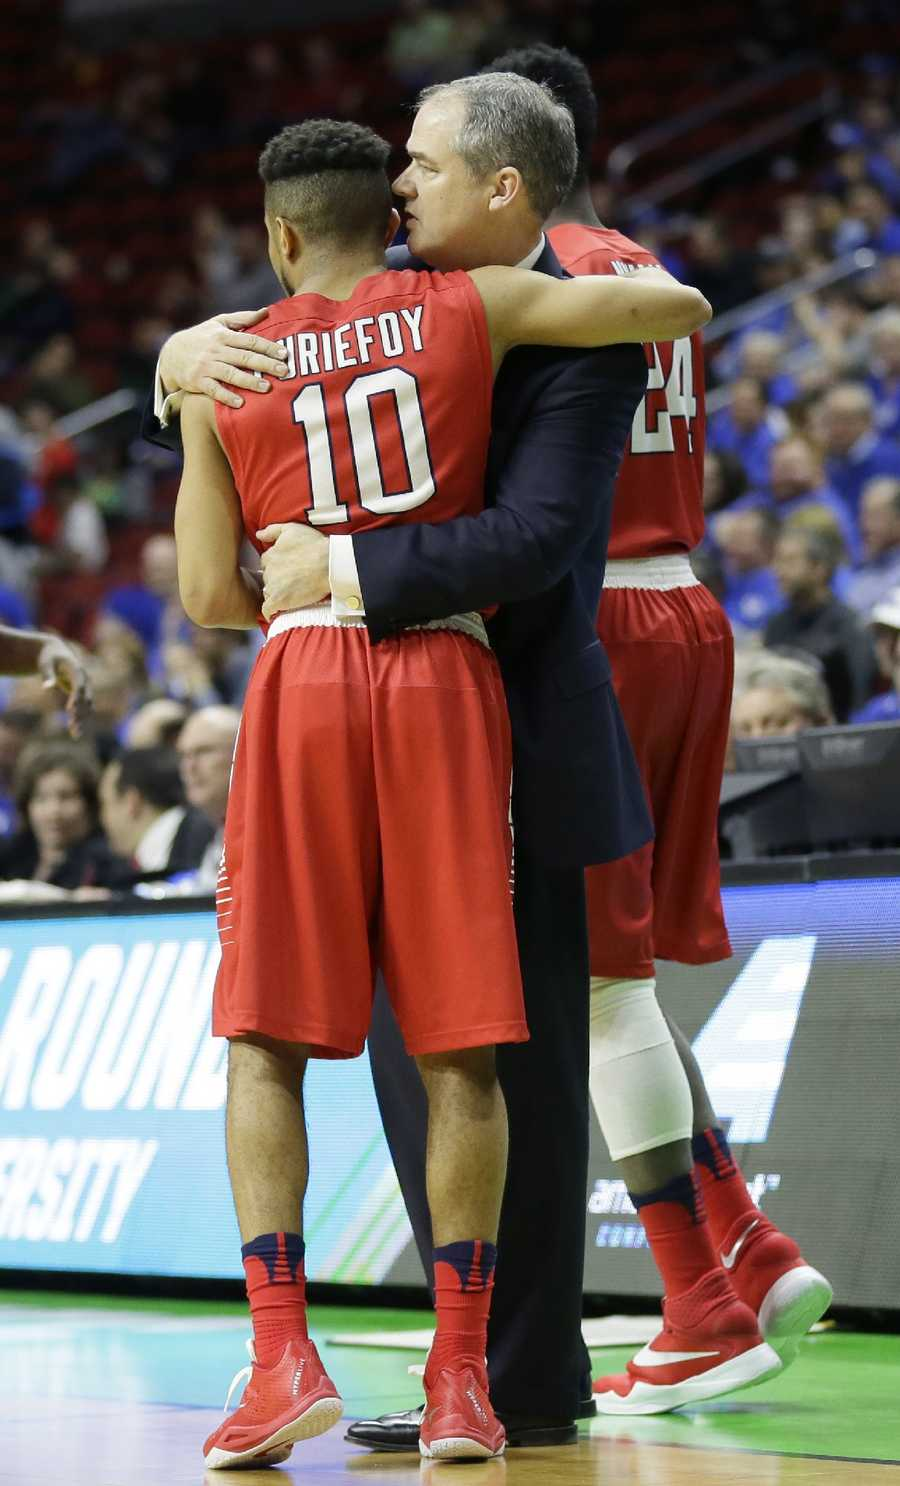 Stony Brook guard Carson Puriefoy (10) gets a hug from coach Steve Pikiell at the end of a first-round men's college basketball game against Kentucky in the NCAA Tournament, Thursday, March 17, 2016, in Des Moines, Iowa. Kentucky won 85-57.